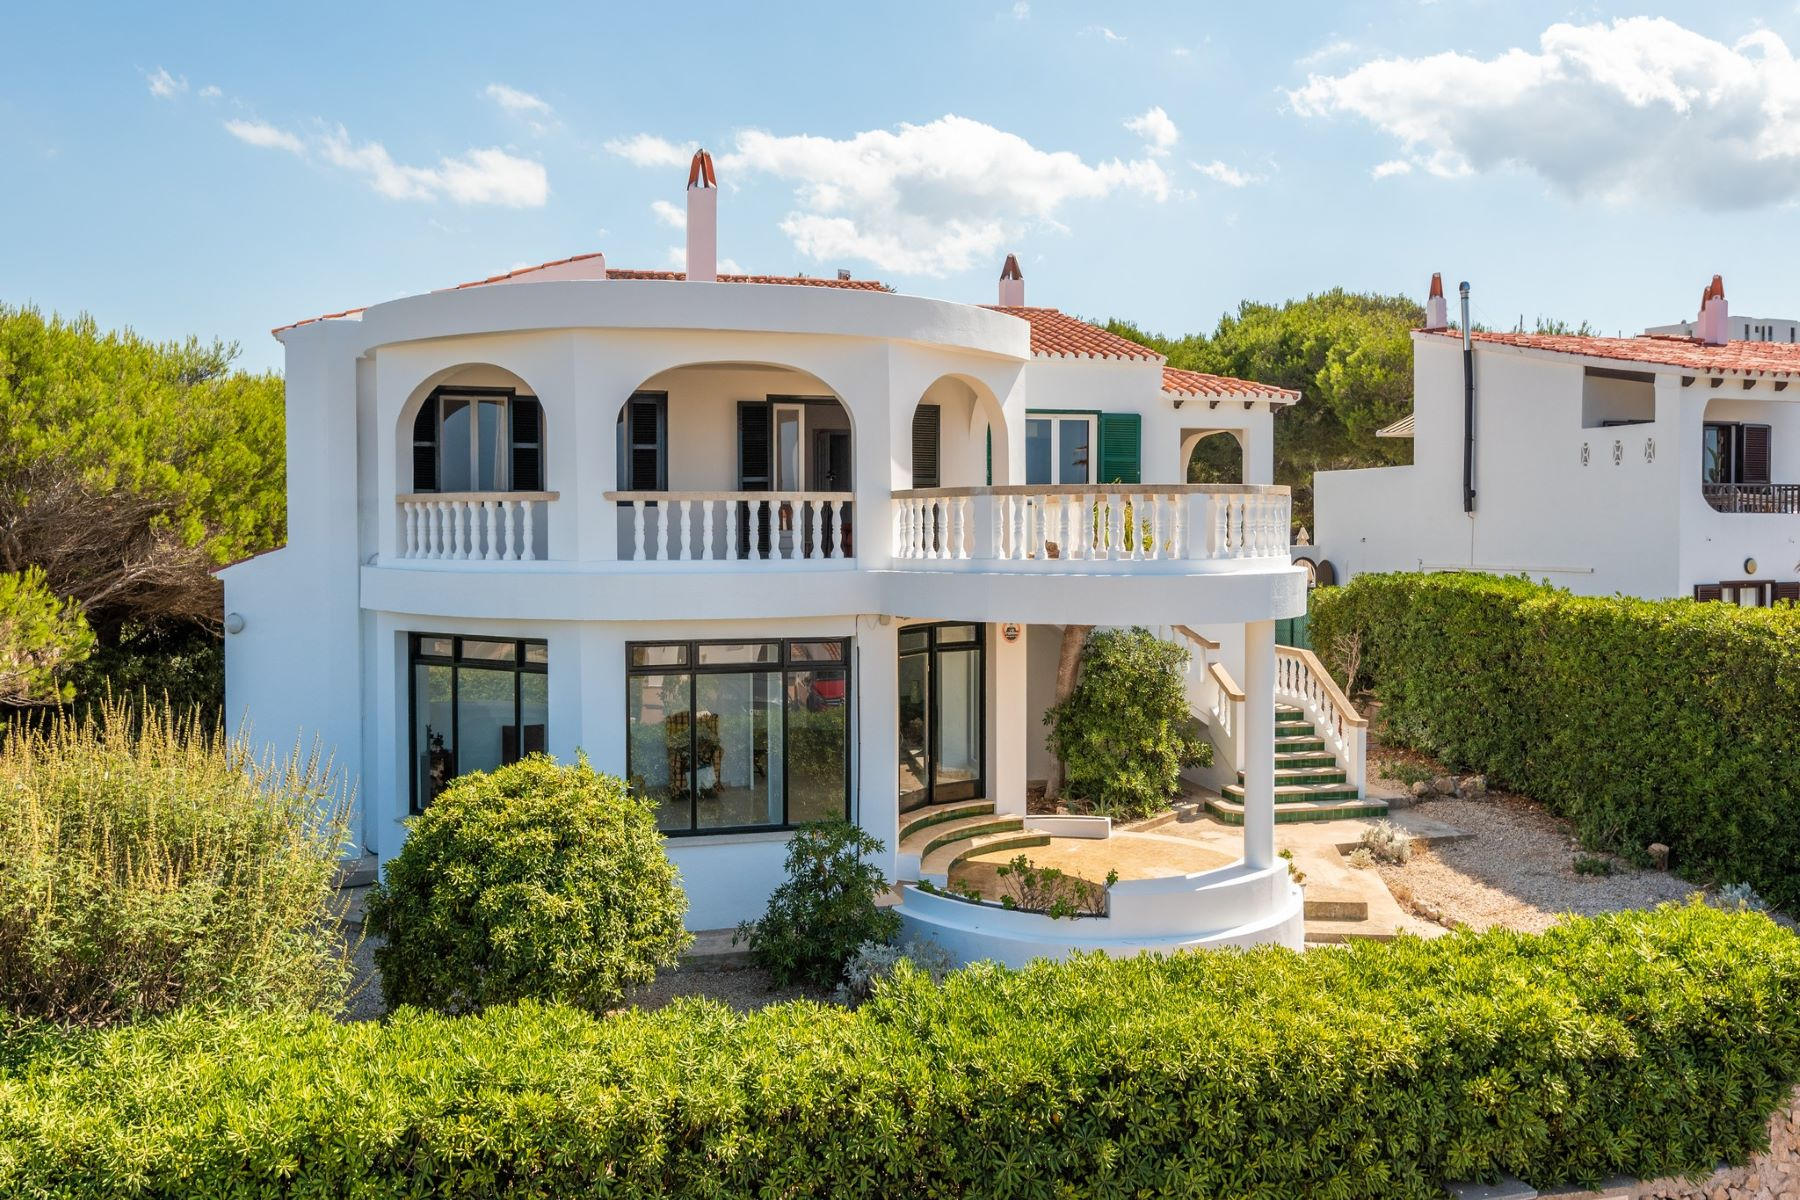 Single Family Homes for Sale at Spacious property with tourist licence to renovate Other Balearic Islands, Balearic Islands Spain